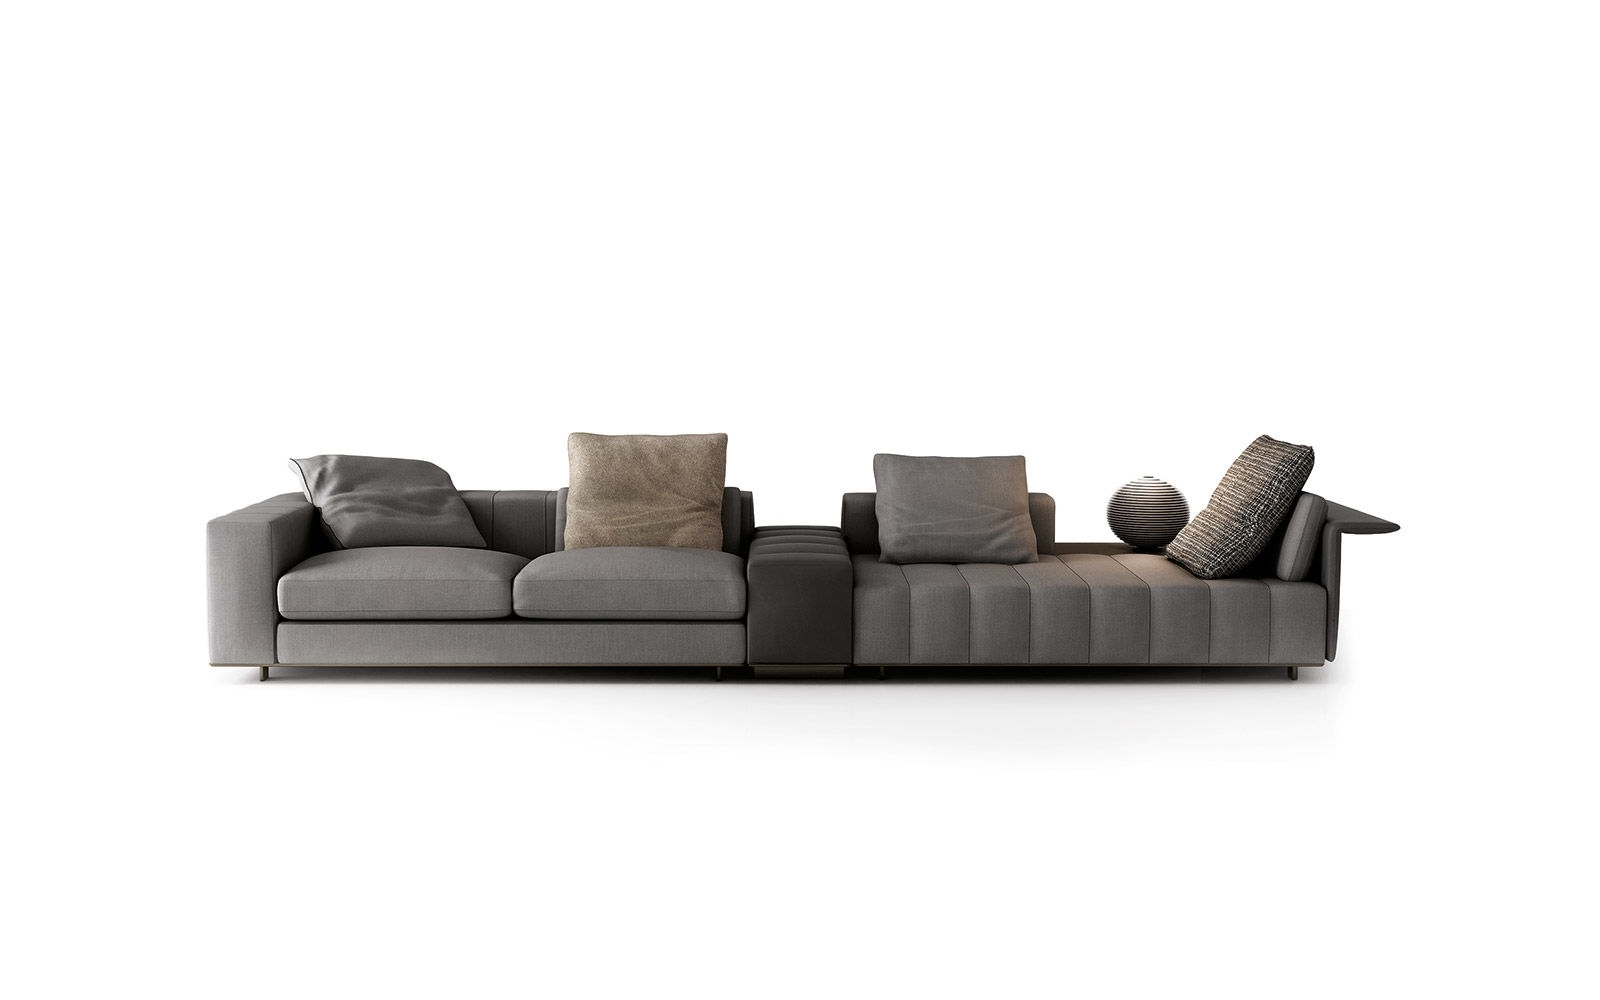 Freeman Seating System | Sofas - En within Calder Grey 6 Piece Manual Reclining Sectionals (Image 12 of 30)